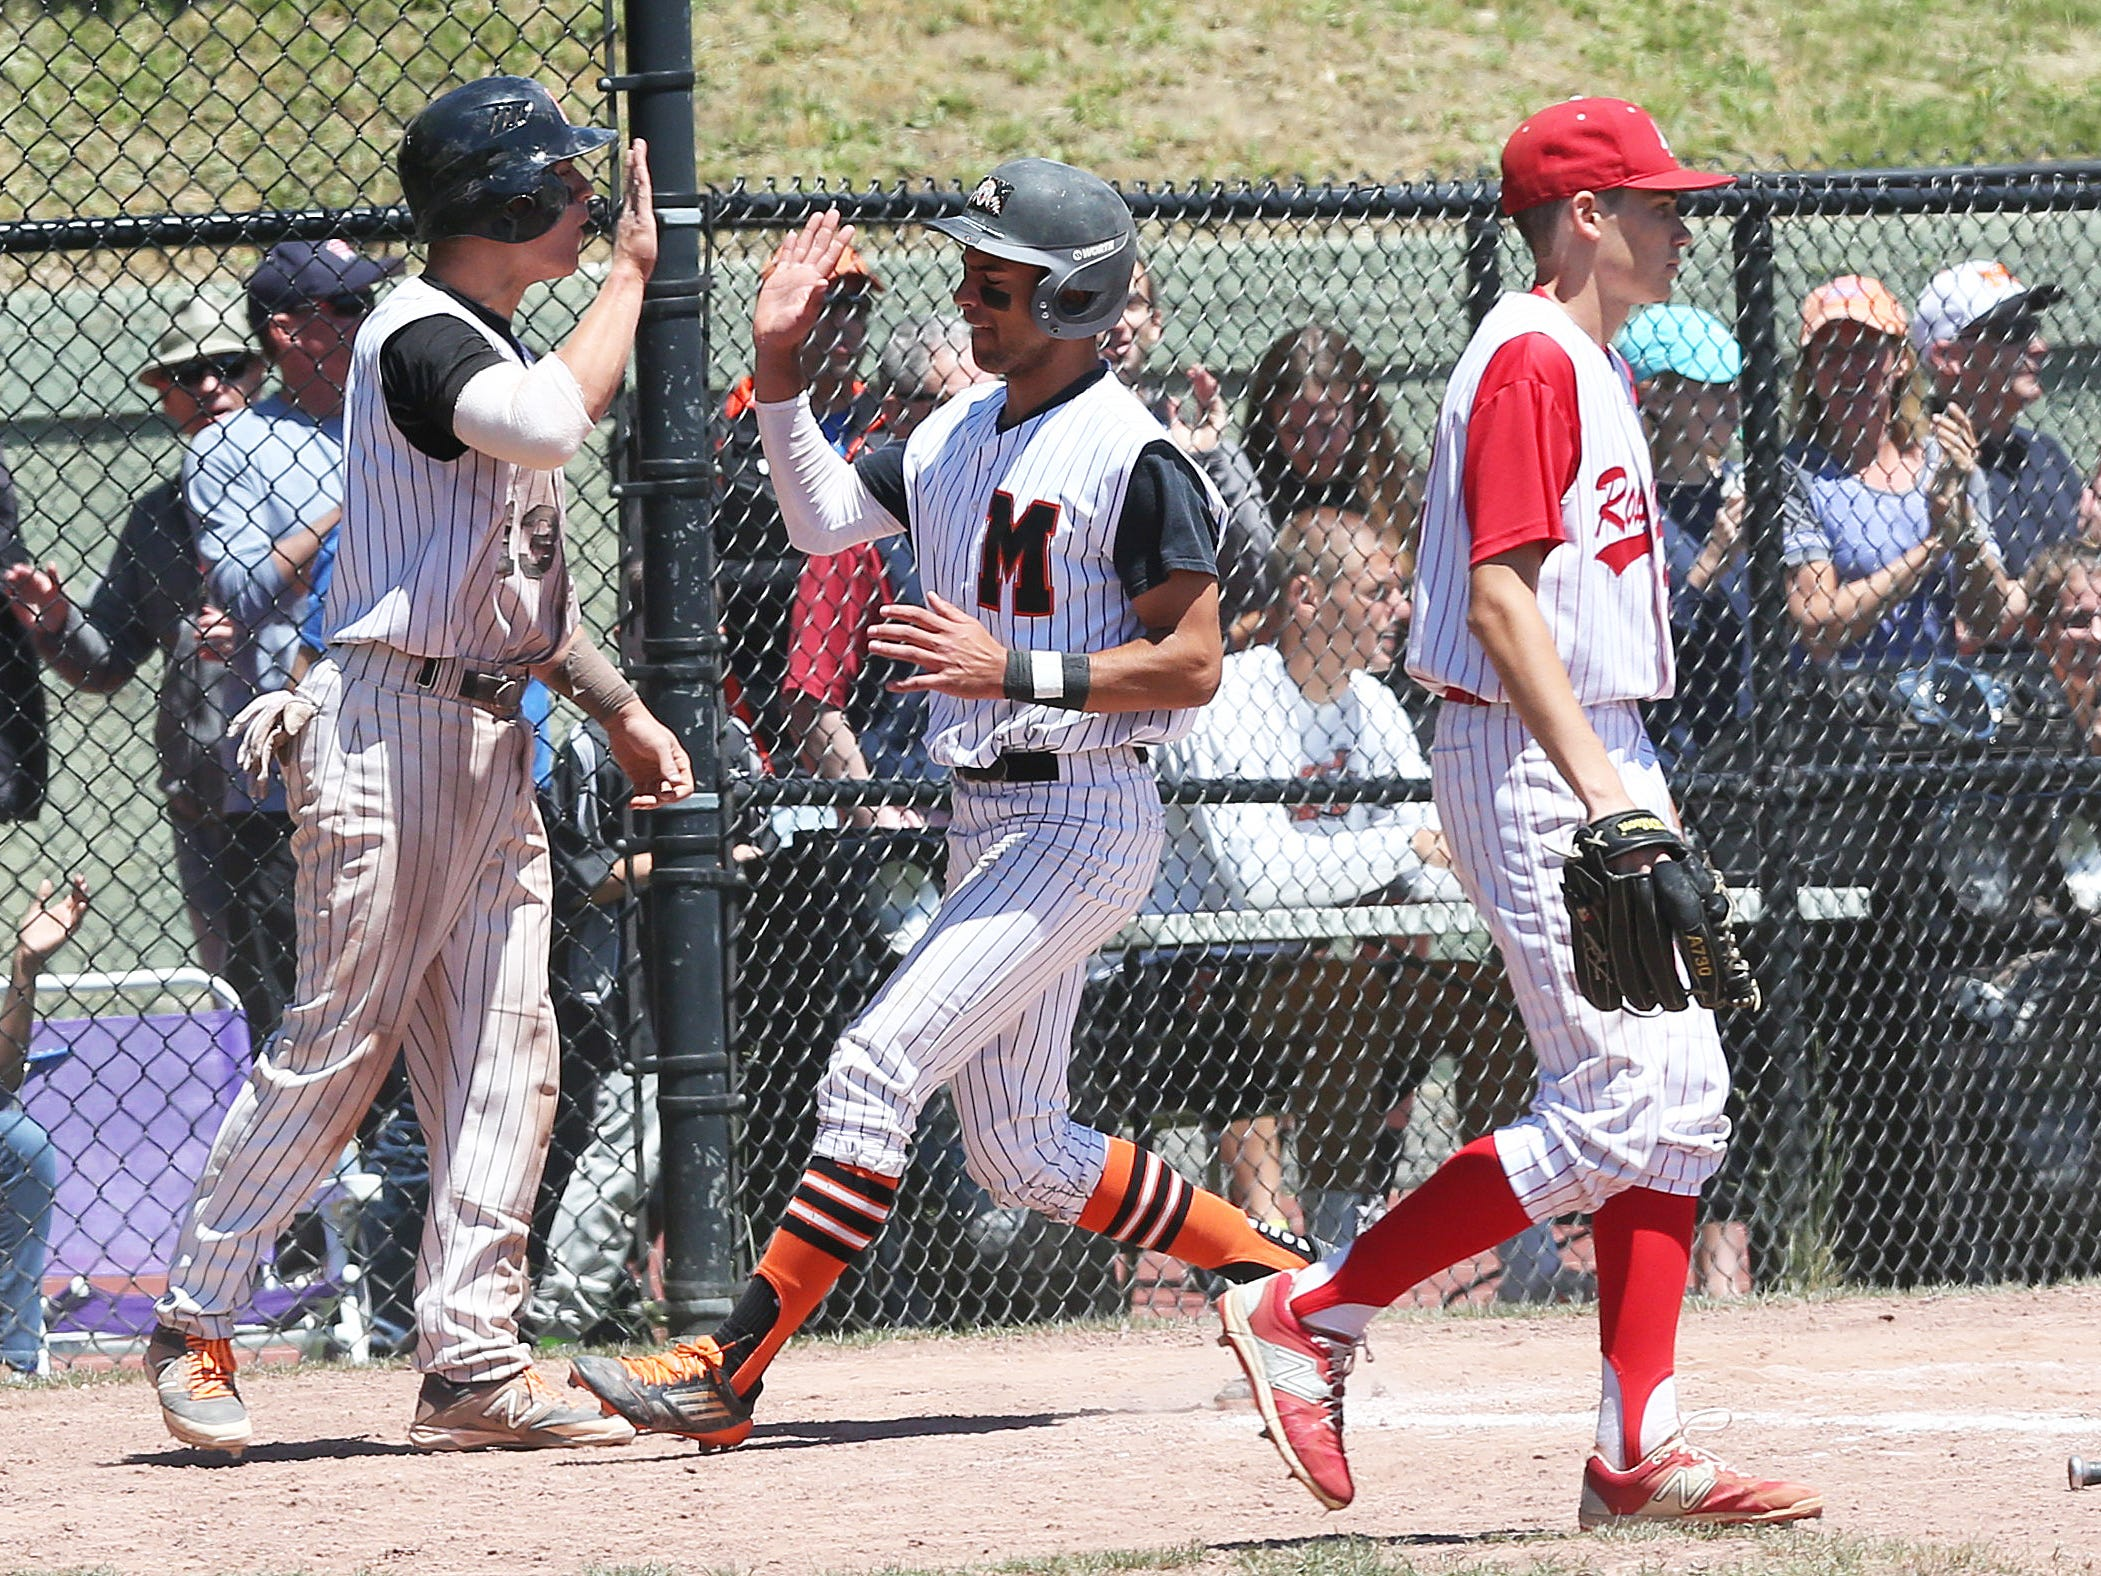 From left, Mamaroneck's Andy Karlan and Andrew Gross celebrate after scoring on Kumar Nambiar bases clearing double against North Rockland in a boys baseball playoff game at Mamaroneck High School on Saturday, May 23, 2015. Mamaroneck won the game 5-3.